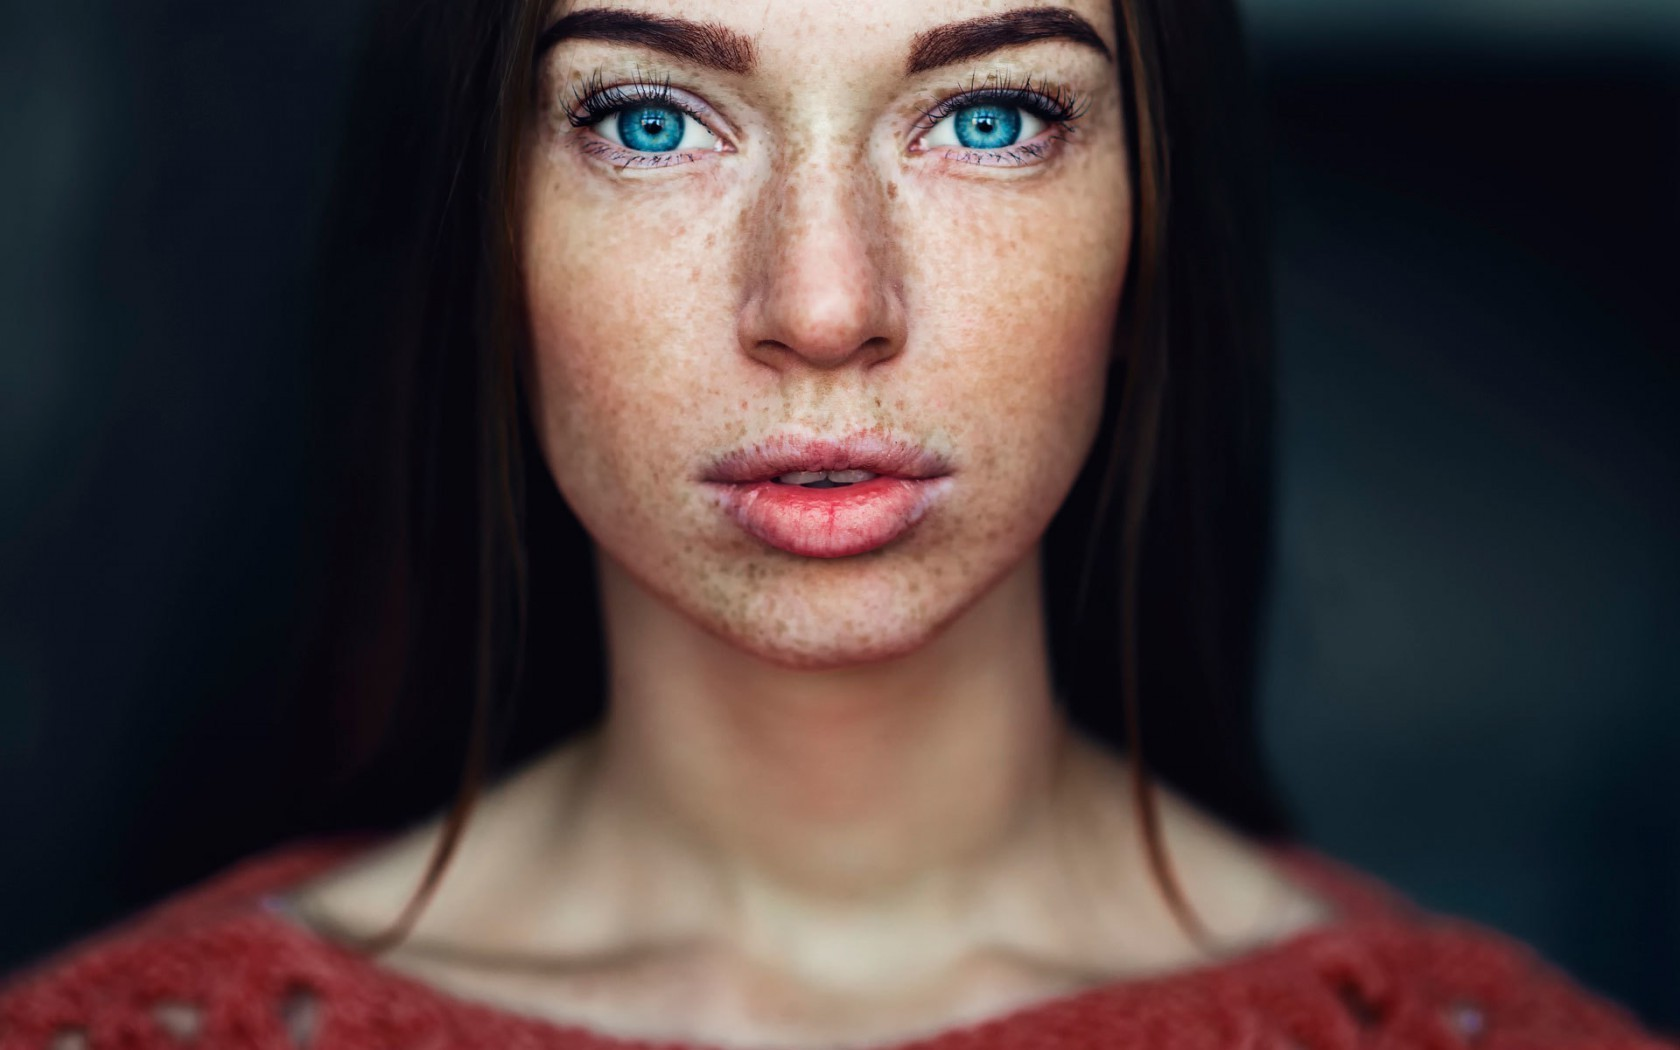 Girl Face Wallpaper 5k Women Brunette Blue Eyes Freckles Face Looking At